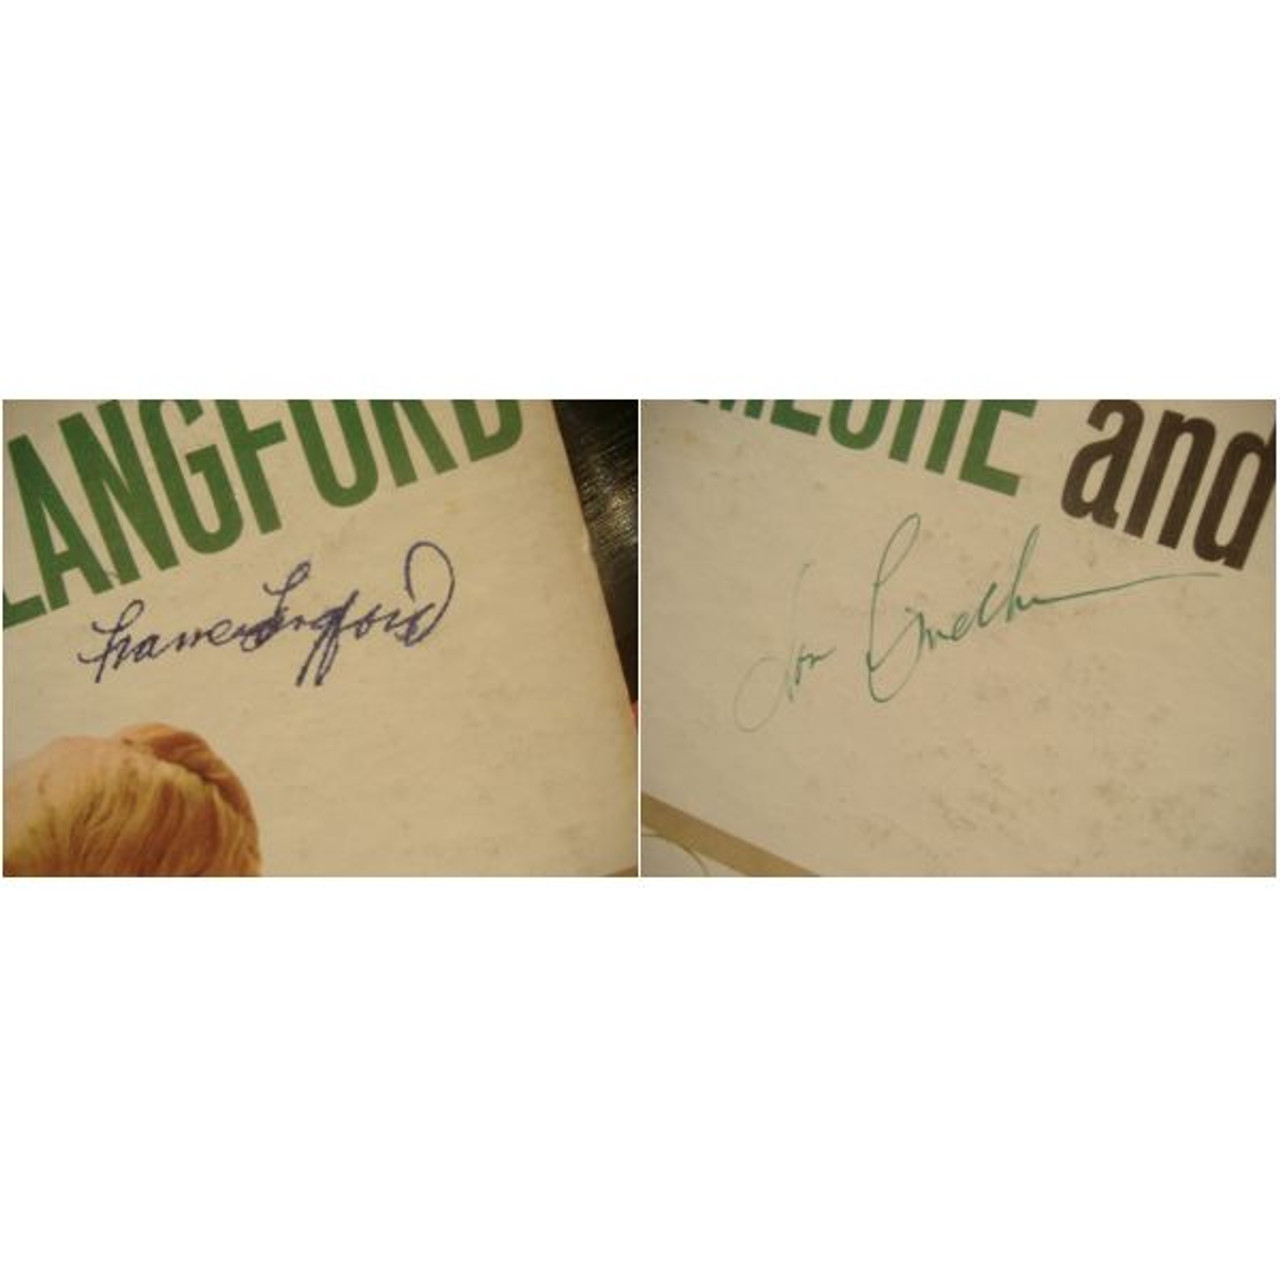 Ameche, Don Frances Langford The Bickersons LP Signed